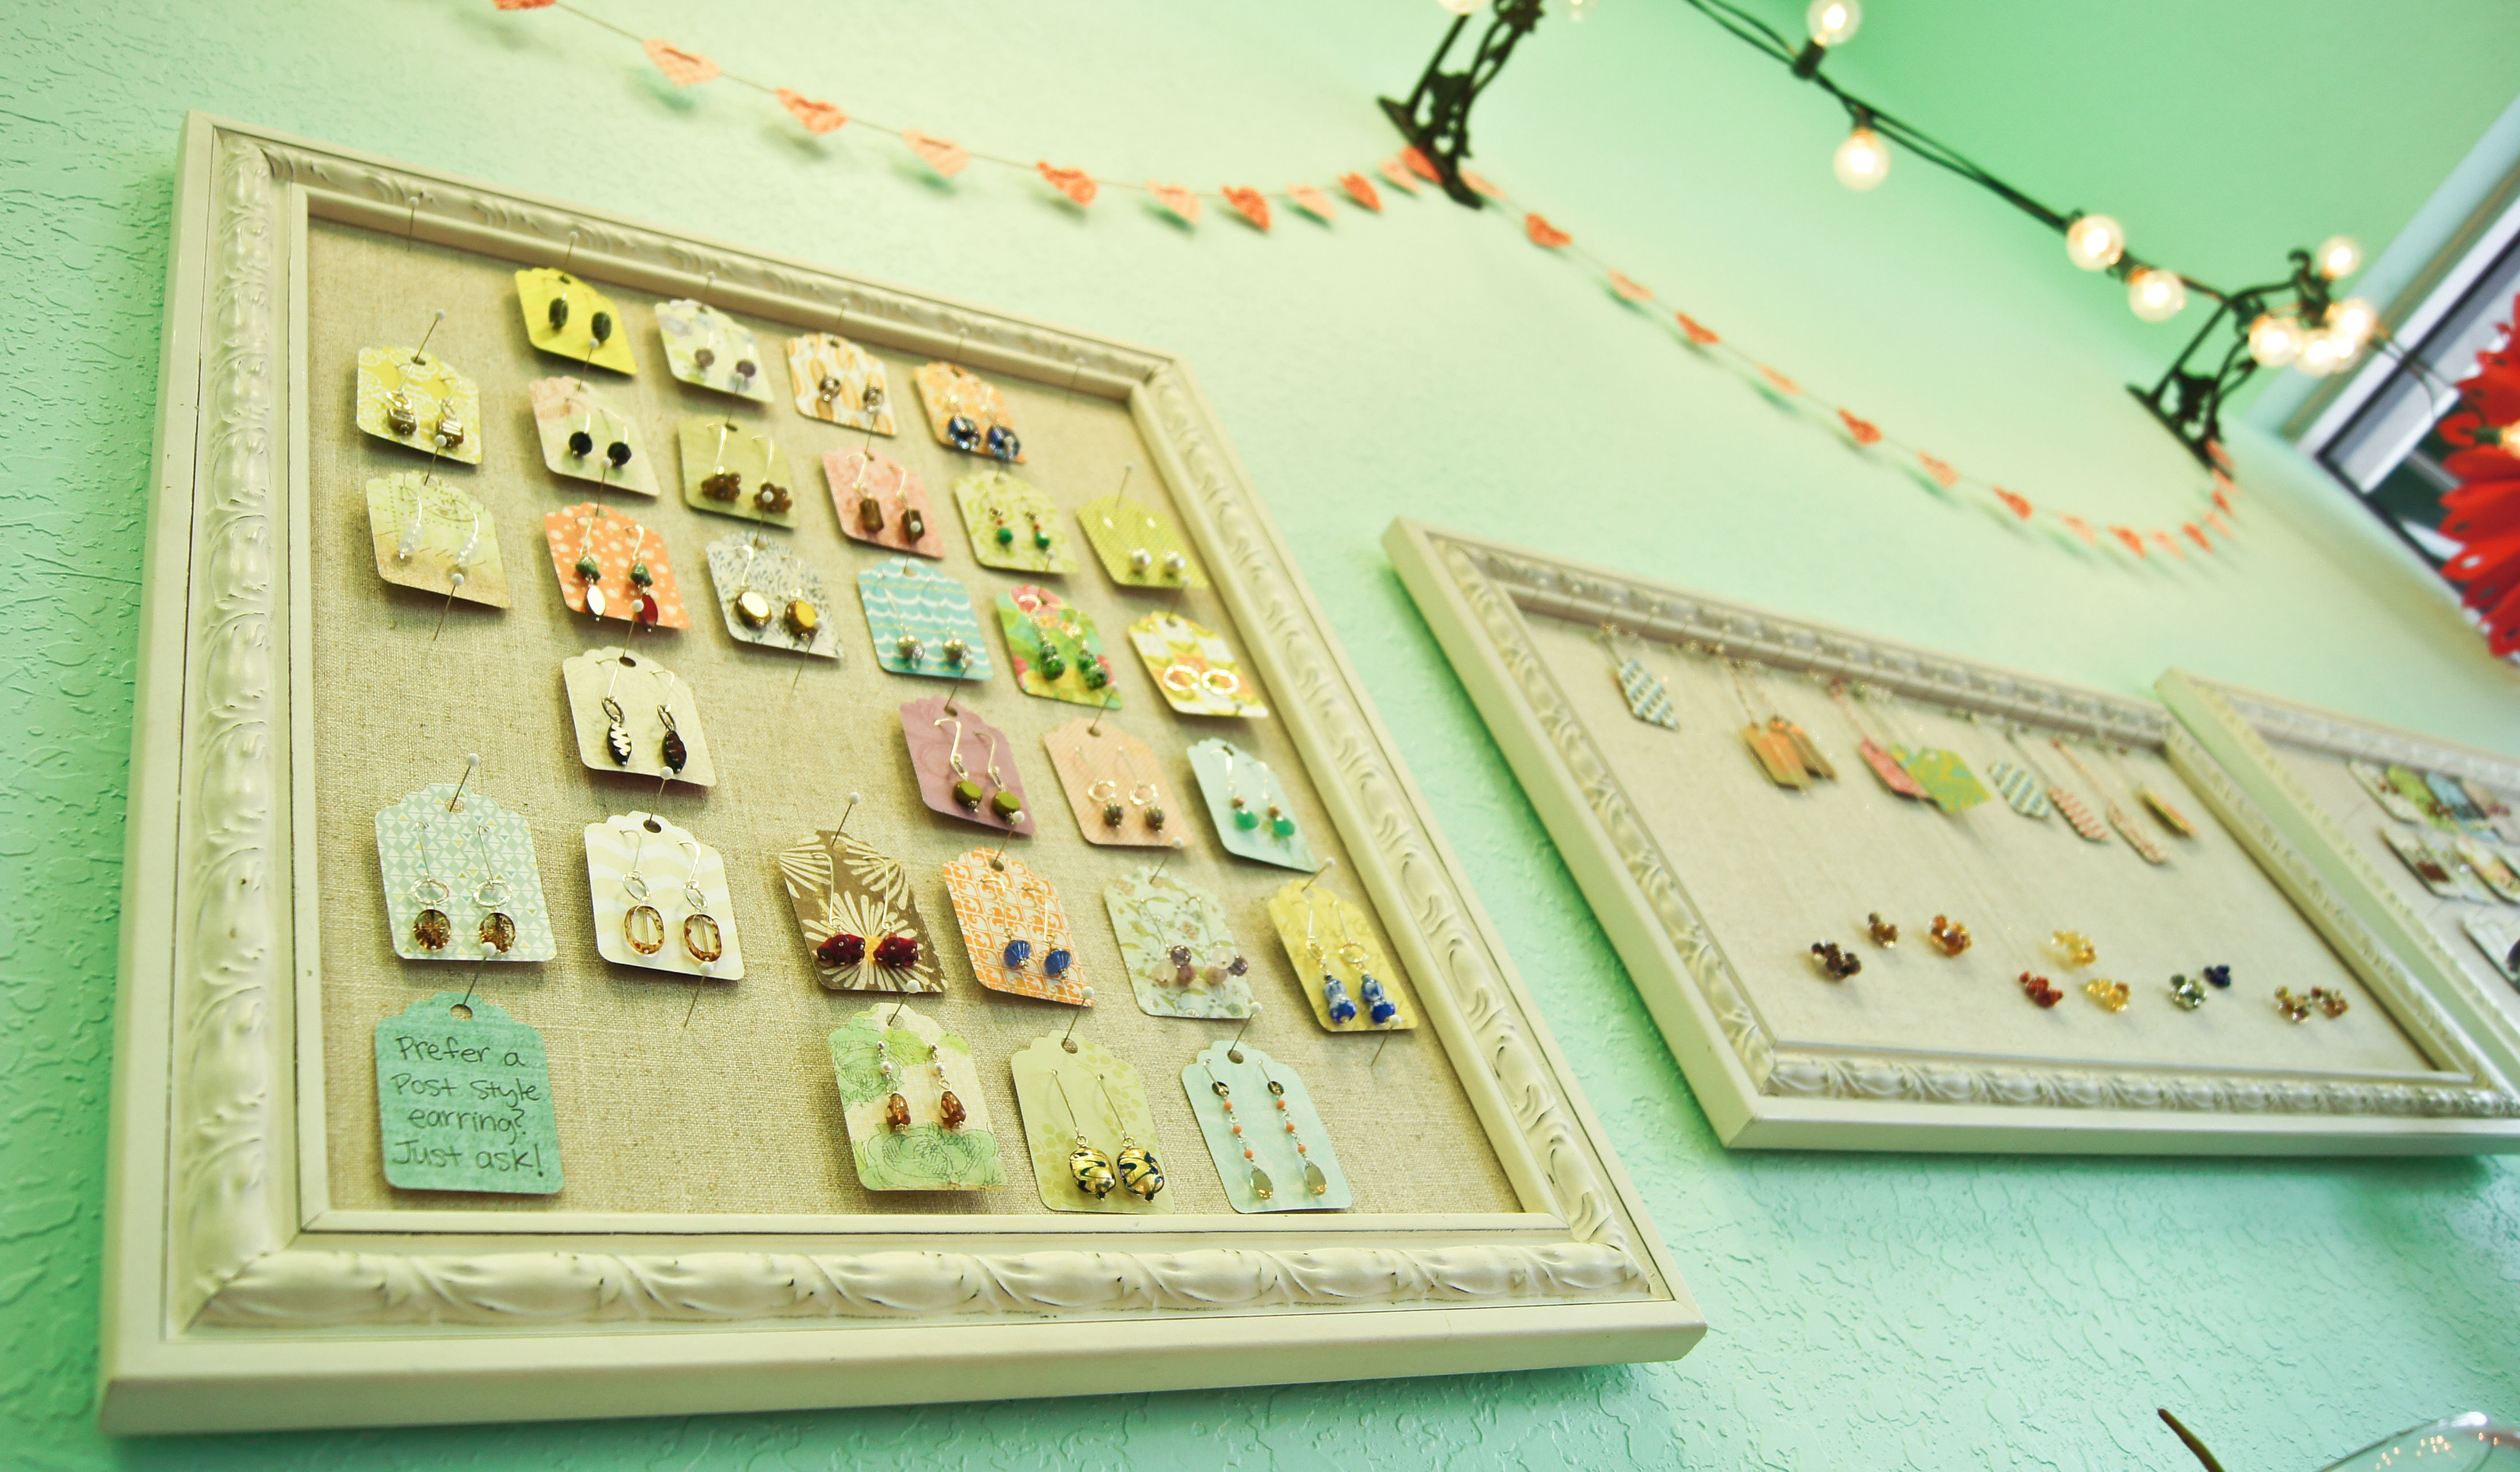 Jewelry display boards. Made these by covering foam core board in linen and fitting the boards into open frames! Customers often comment on how pretty they are!